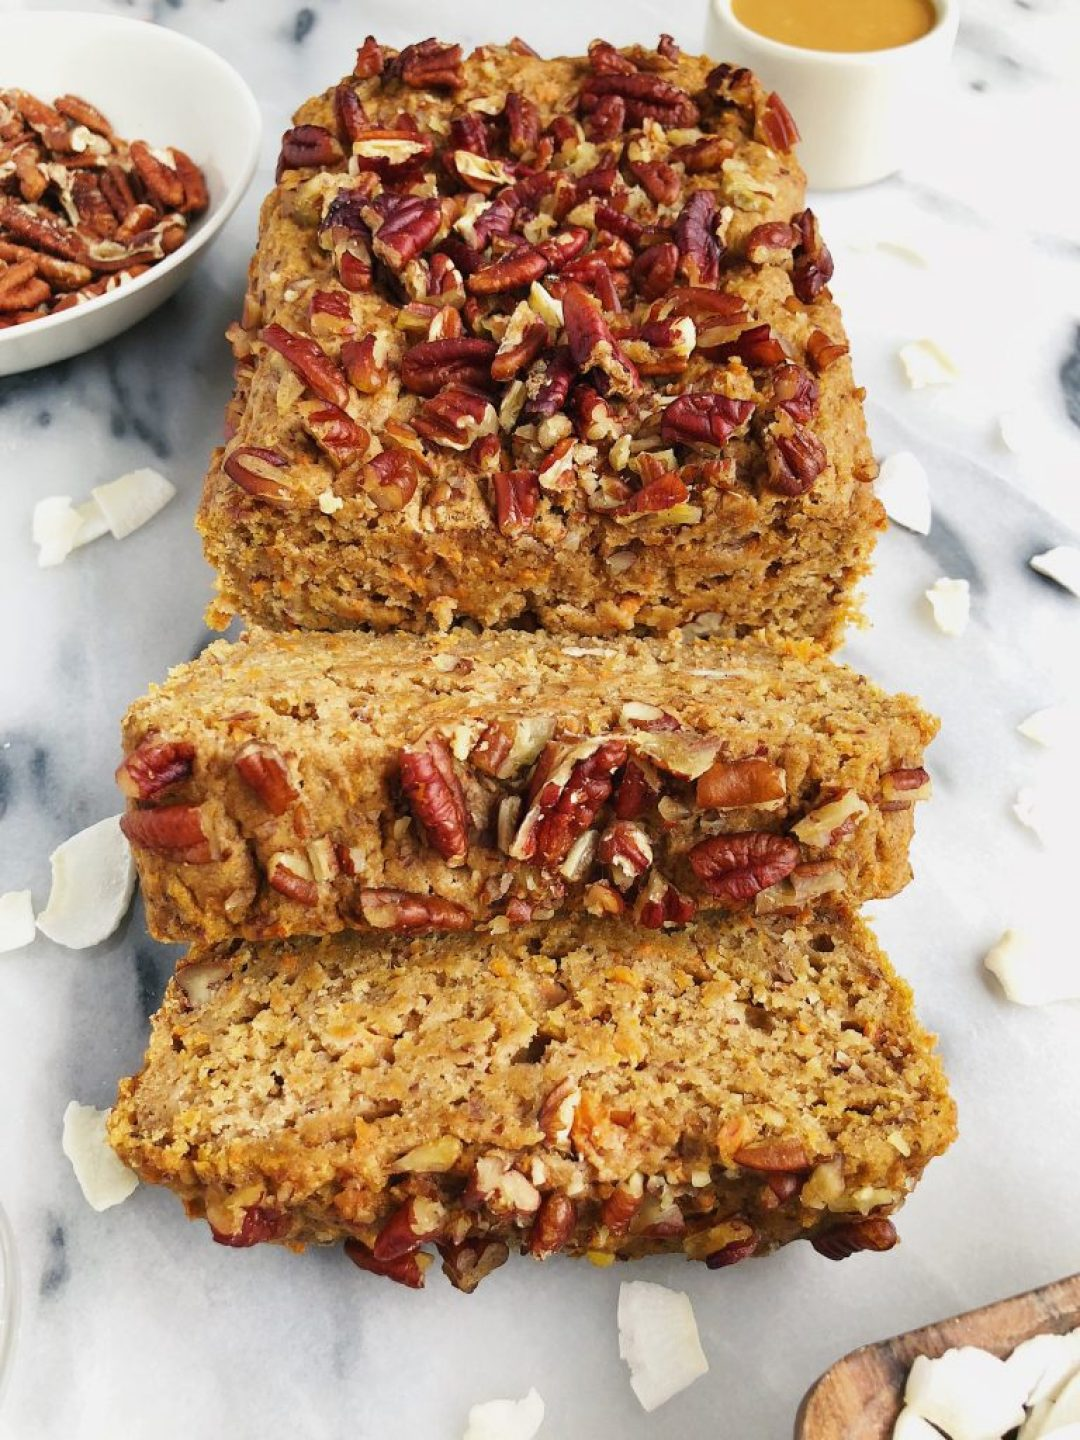 One-Bowl Vegan Carrot Cake Loaf made with sprouted spelt flour for a healthier carrot cake recipe!